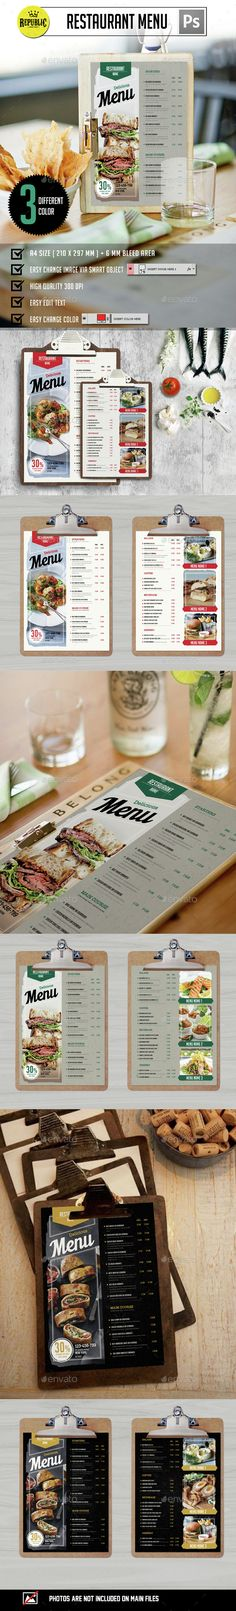 Clean Restaurant Menu - Food Menus | Download: http://graphicriver.net/item/clean-restaurant-menu/15259432?ref=sinzo #Print #Templates